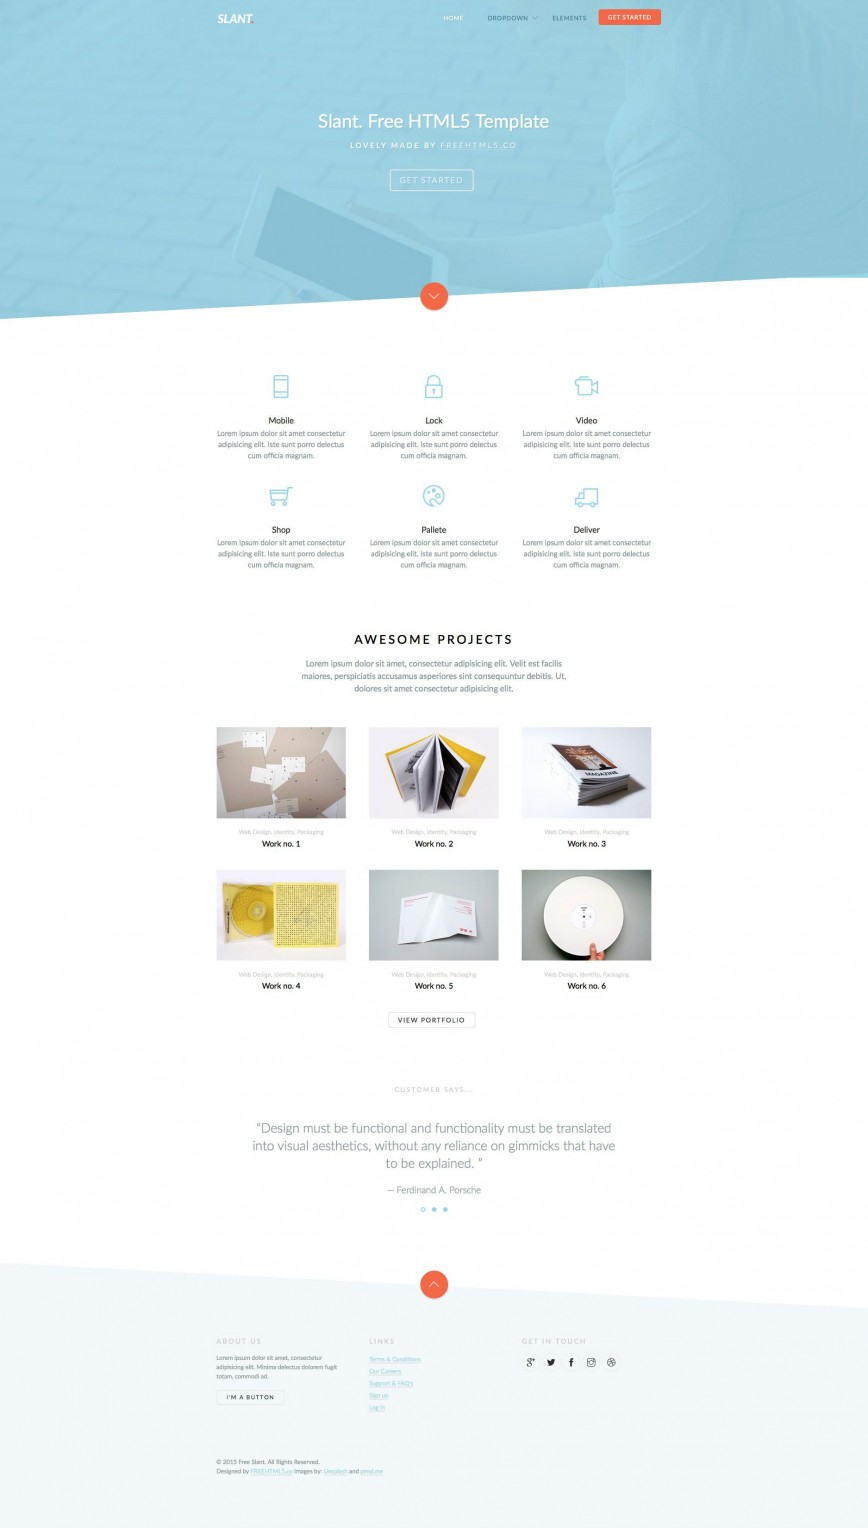 006 Awesome Free Responsive Website Template Download Html And Cs Jquery High Resolution  For It Company868